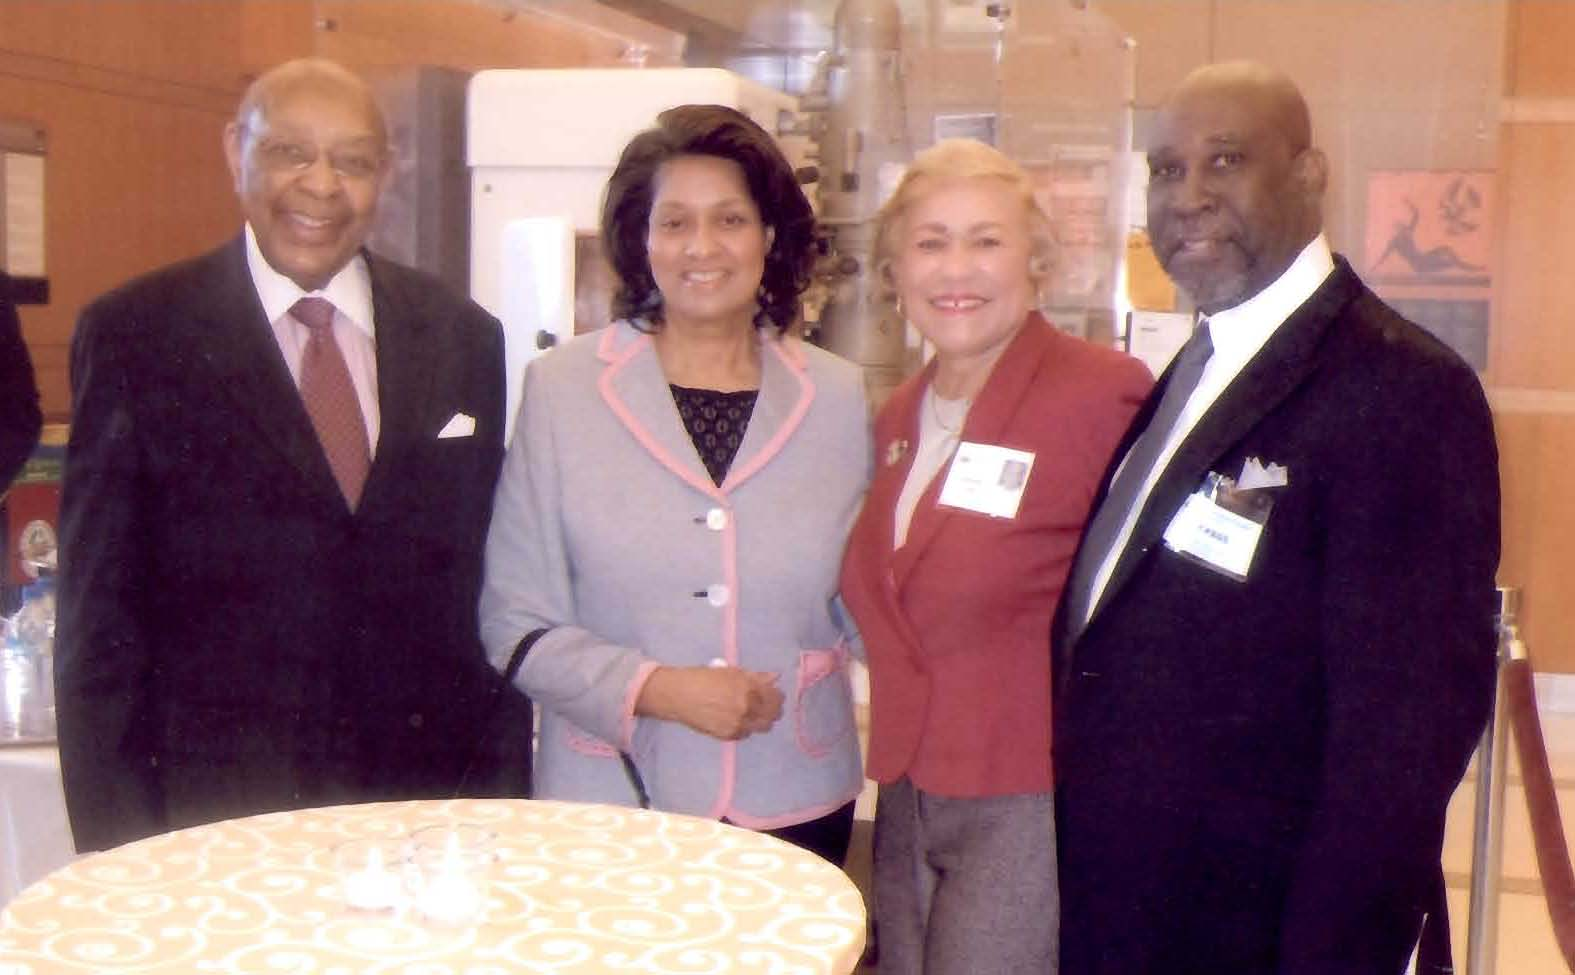 LOUIS STOKES PORTRAIT UNVEILED AT NATIONAL INSTITUTES OF HEALTH